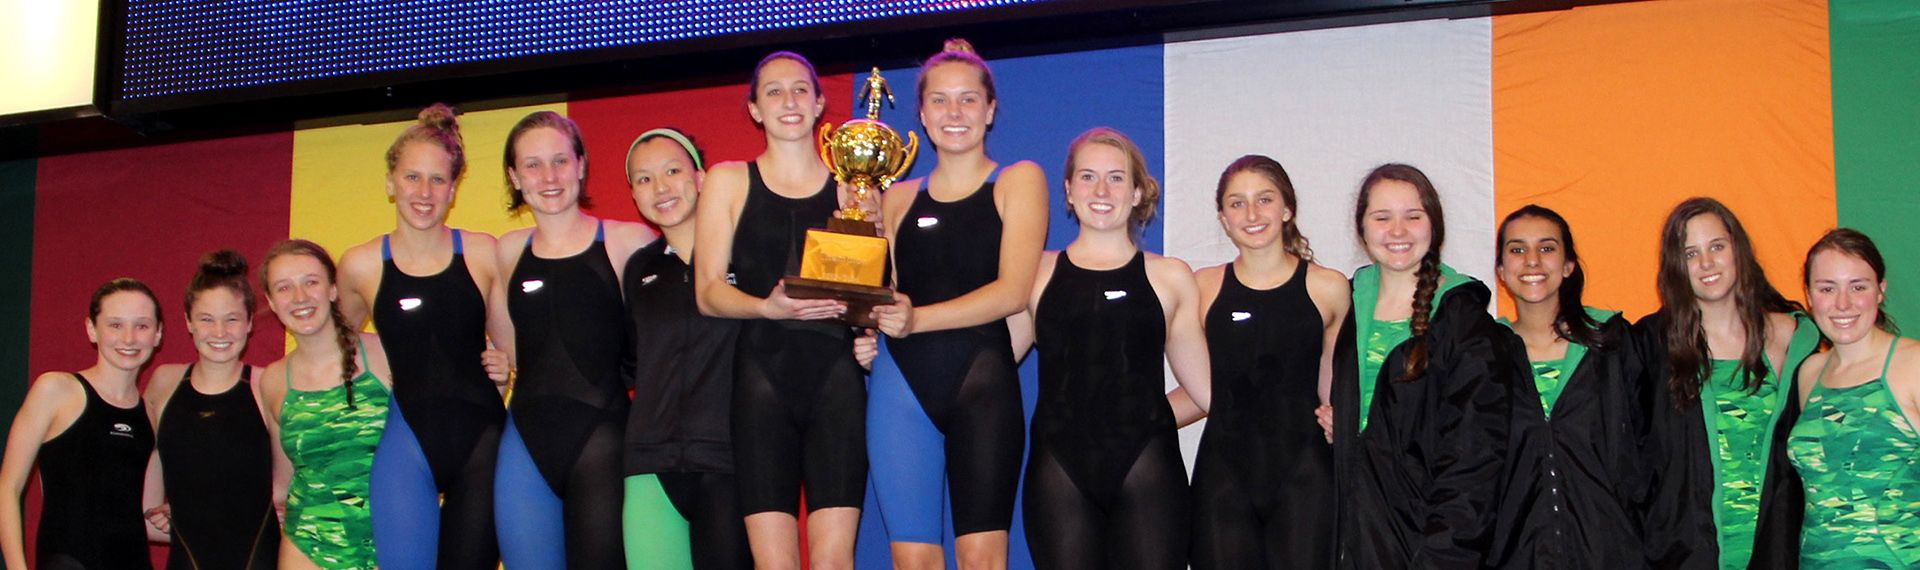 Girl swim team holds championship trophy.